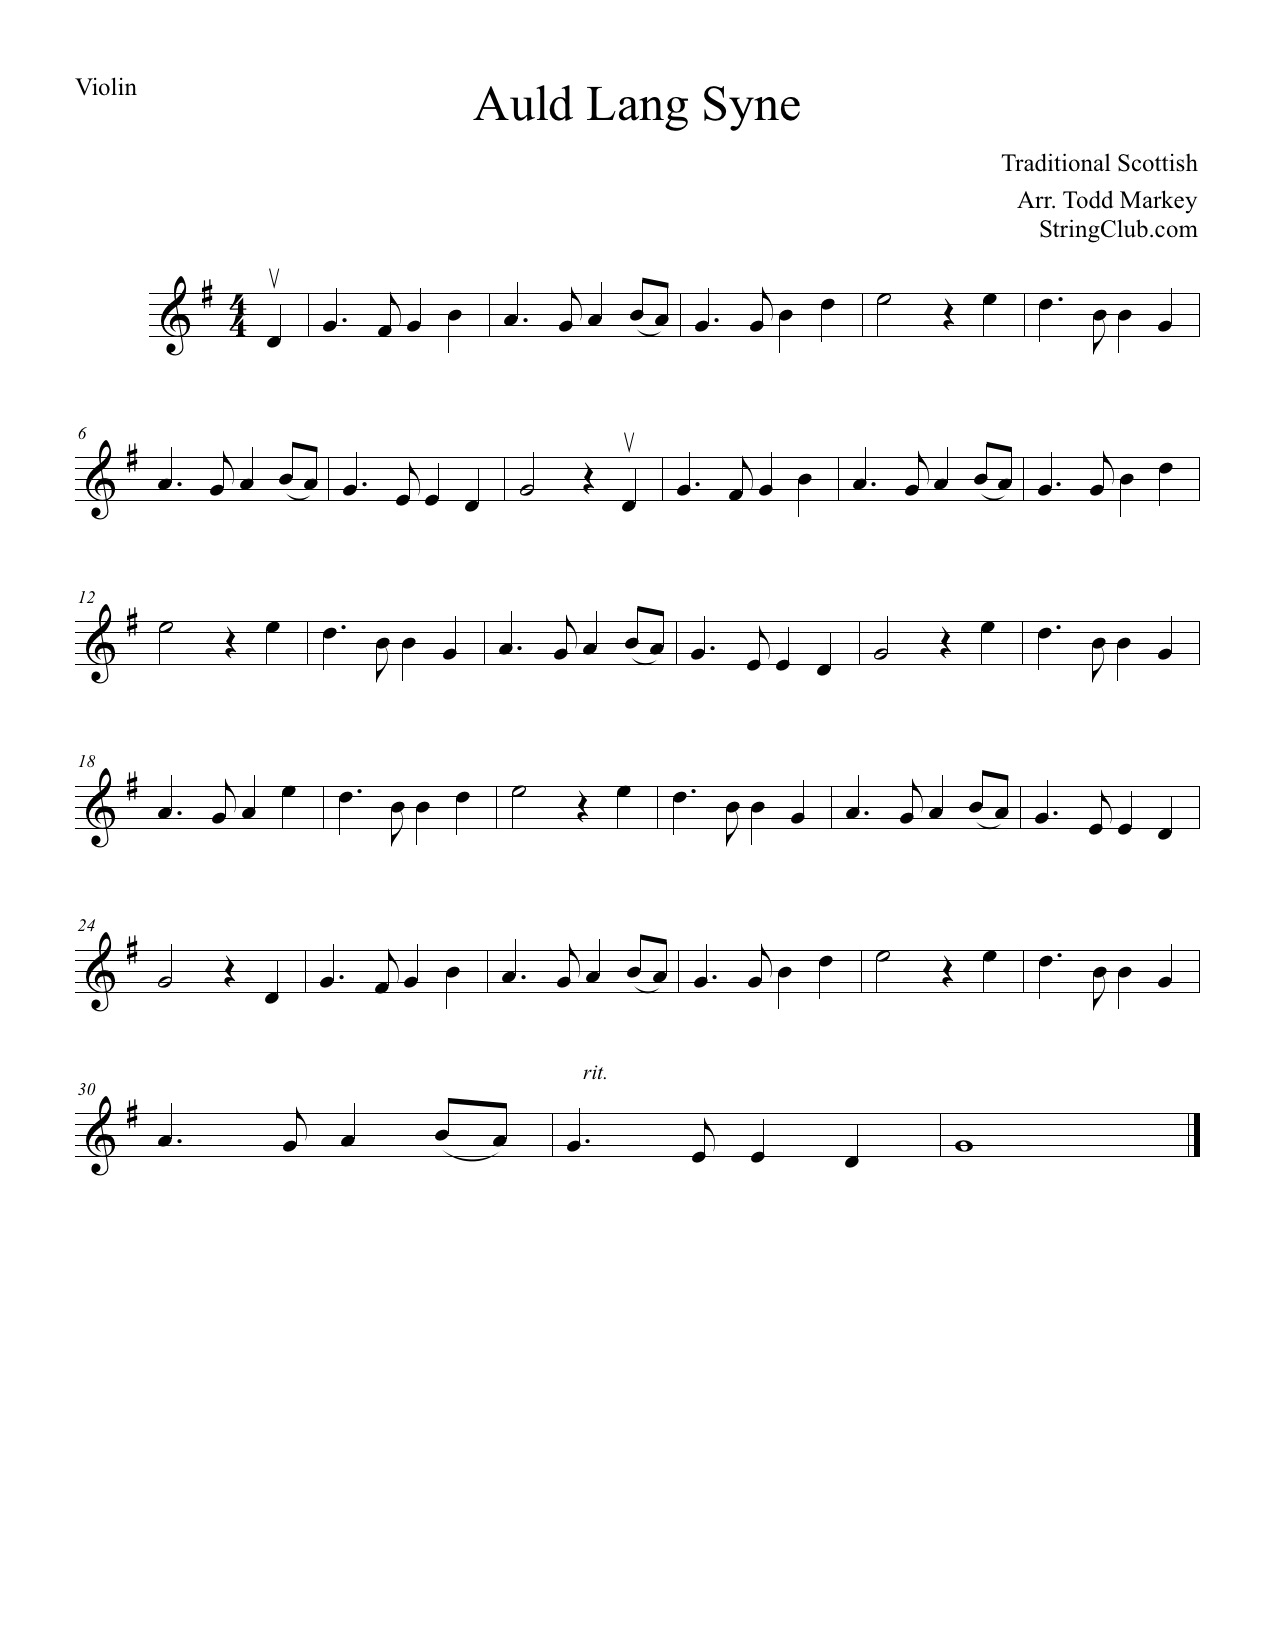 Learn Auld Lang Syne Violin How To Play Tutorial With Notes